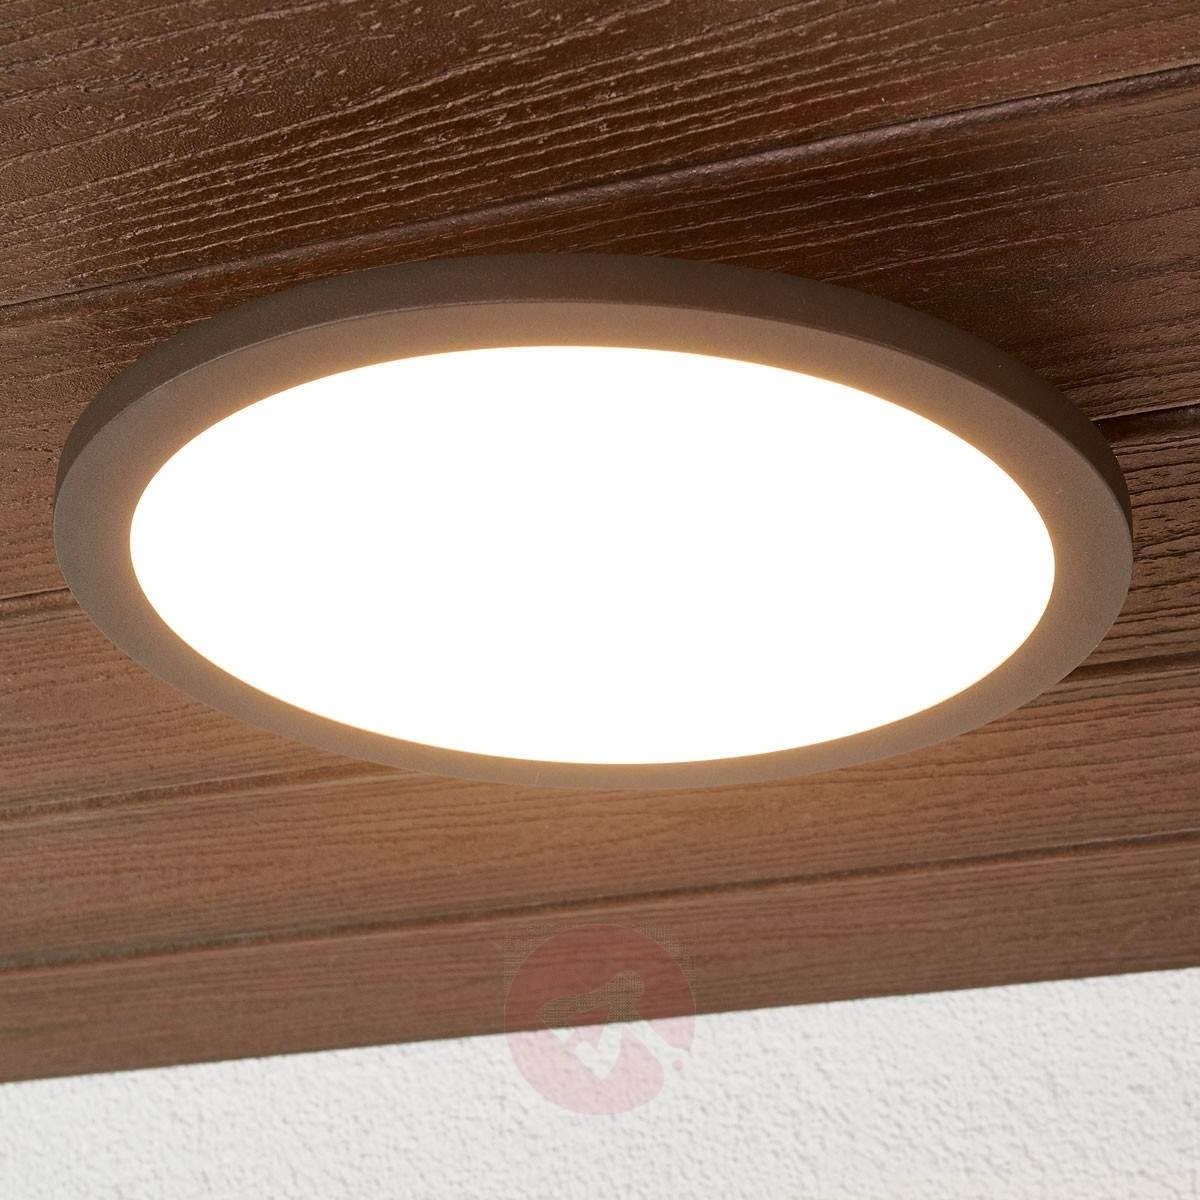 Famous Outdoor Ceiling Sensor Lights Pertaining To Outdoor Ceiling Sensor Light – Outdoor Designs (View 3 of 20)